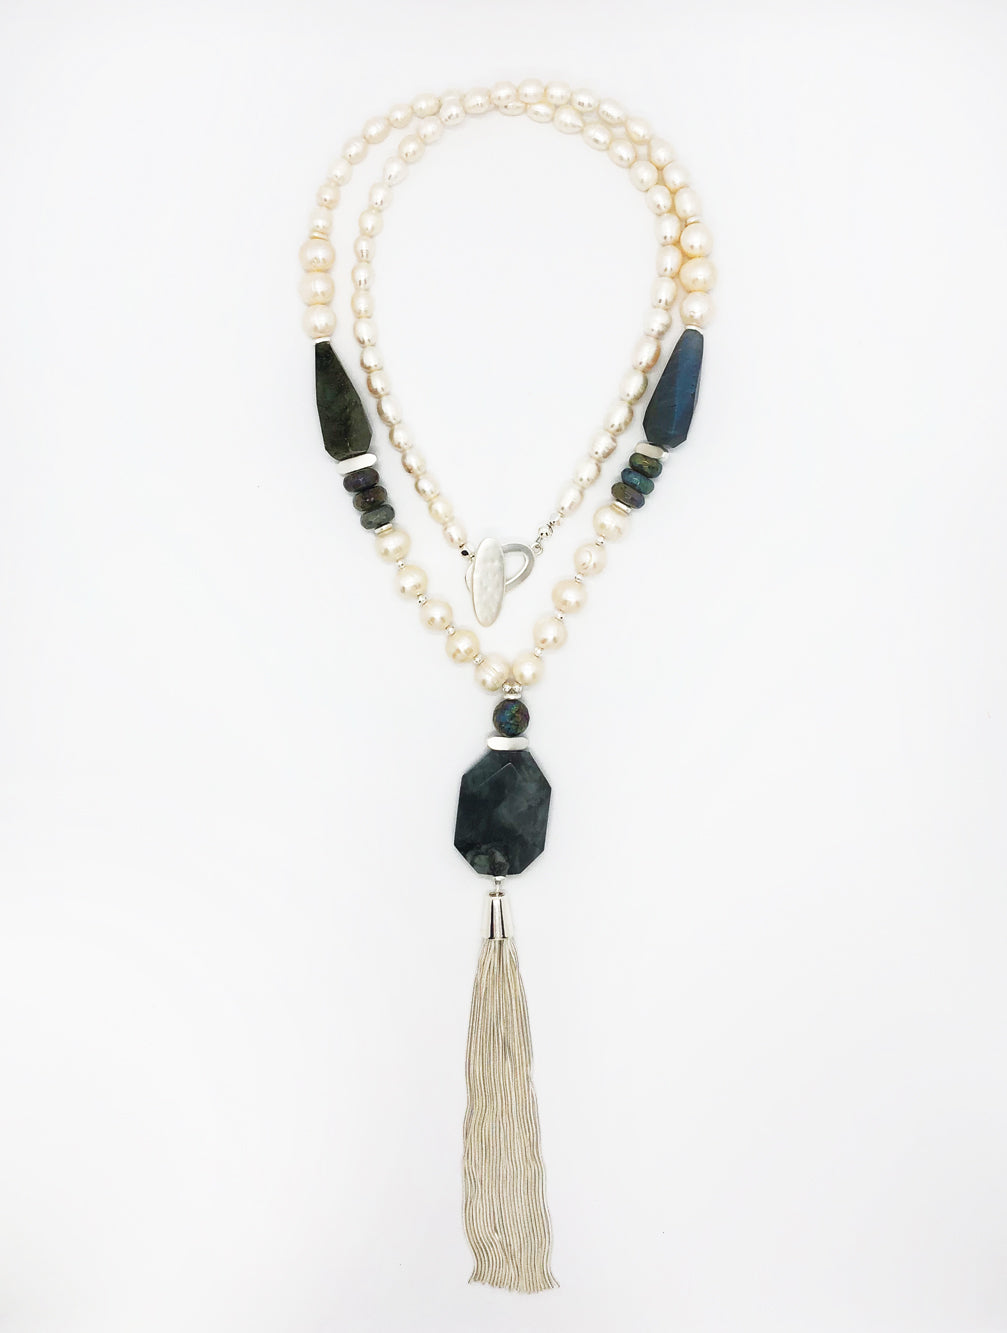 LORI PEARL TASSEL NECKLACE - Kaia London